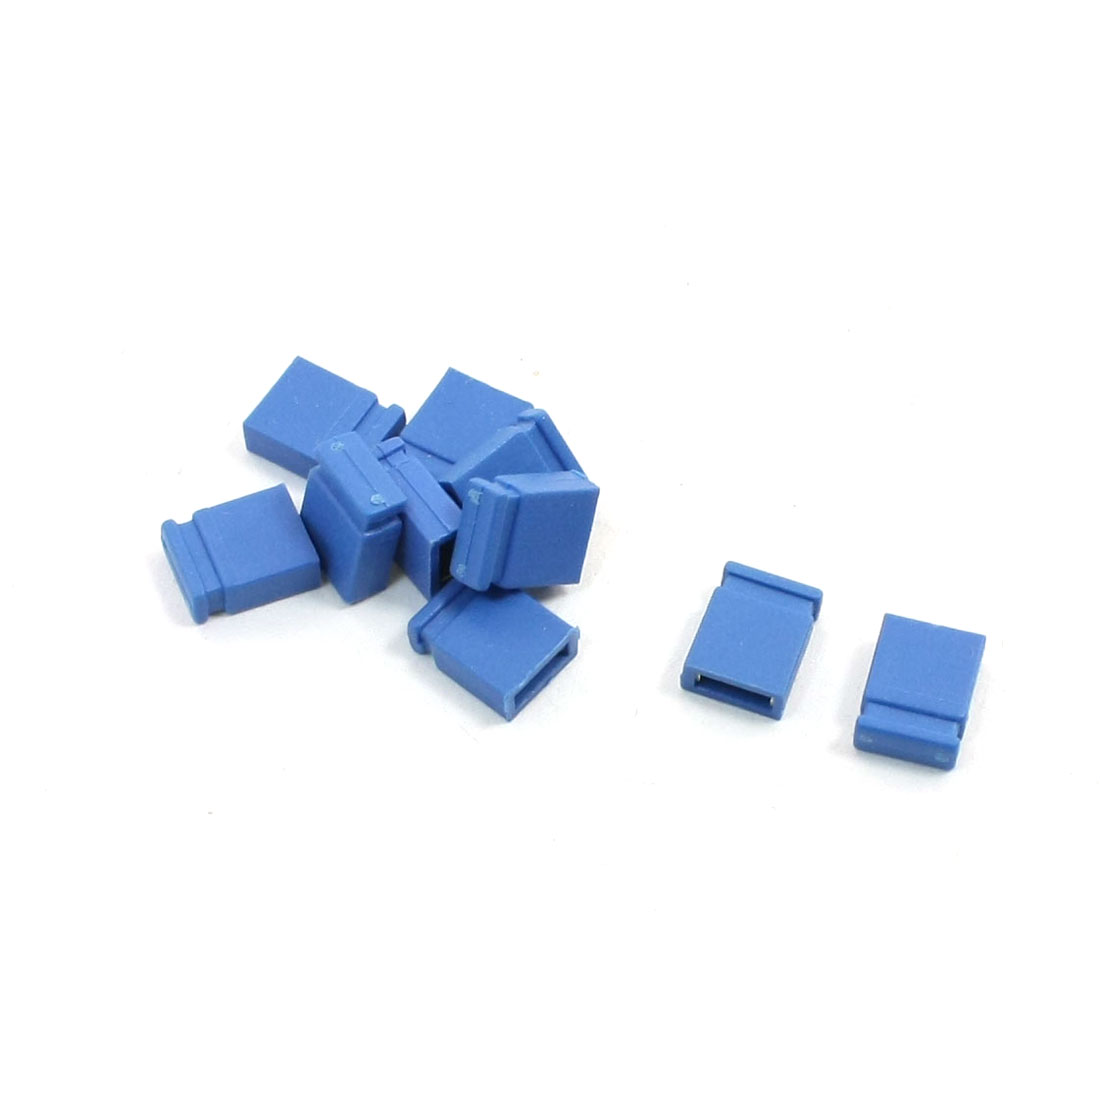 Short-Circuit-Sub-Blocks-Blue-2-54mm-Short-Jumper-Cap-10-Pcs